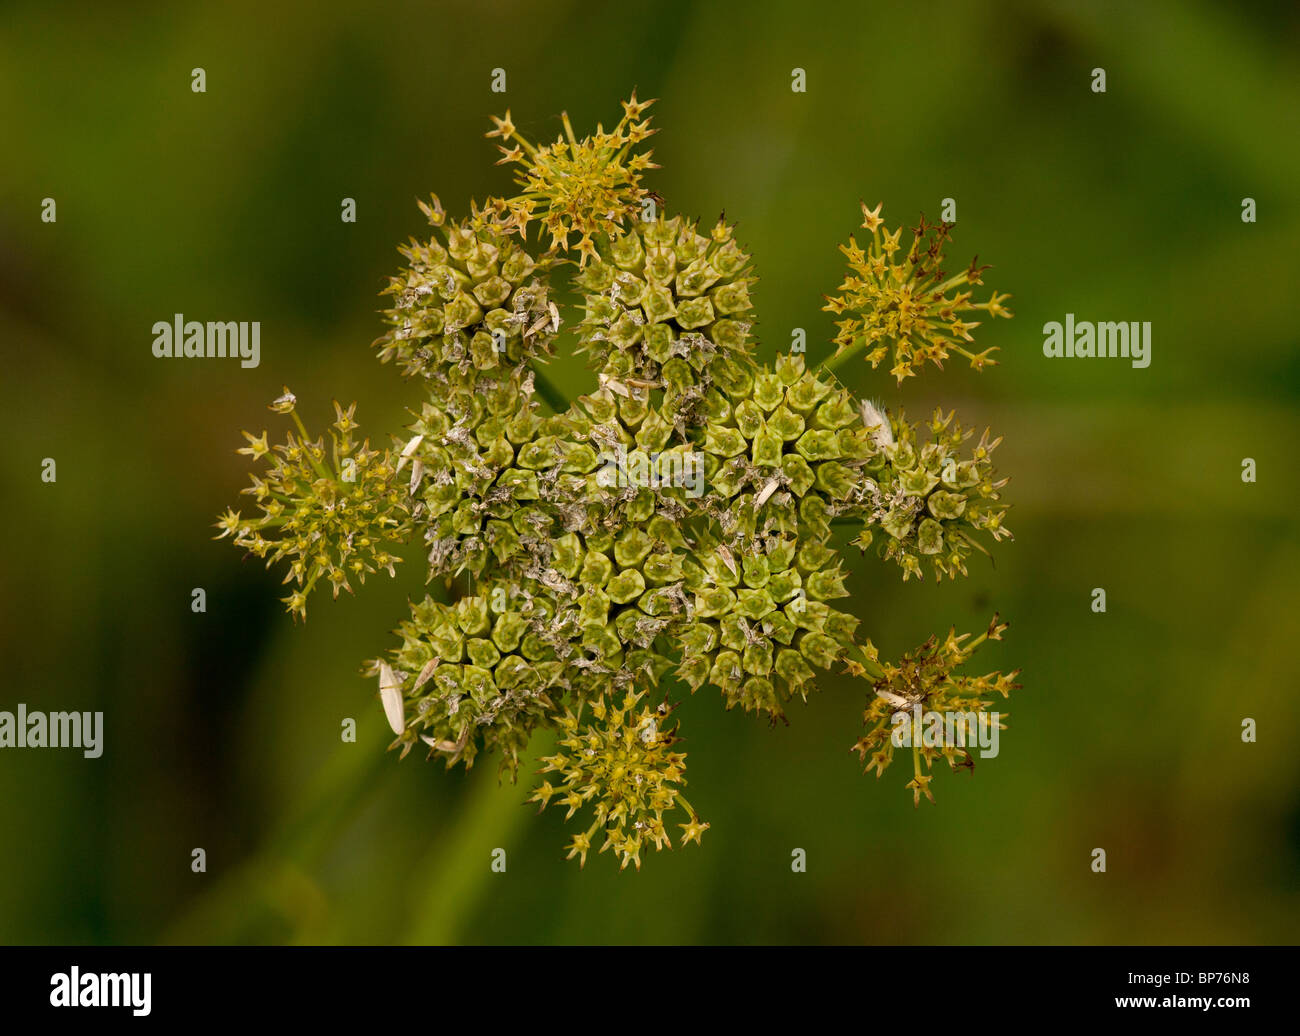 Corky-fruited water dropwort, Oenanthe pimpinelloides in fruit. Dorset. - Stock Image